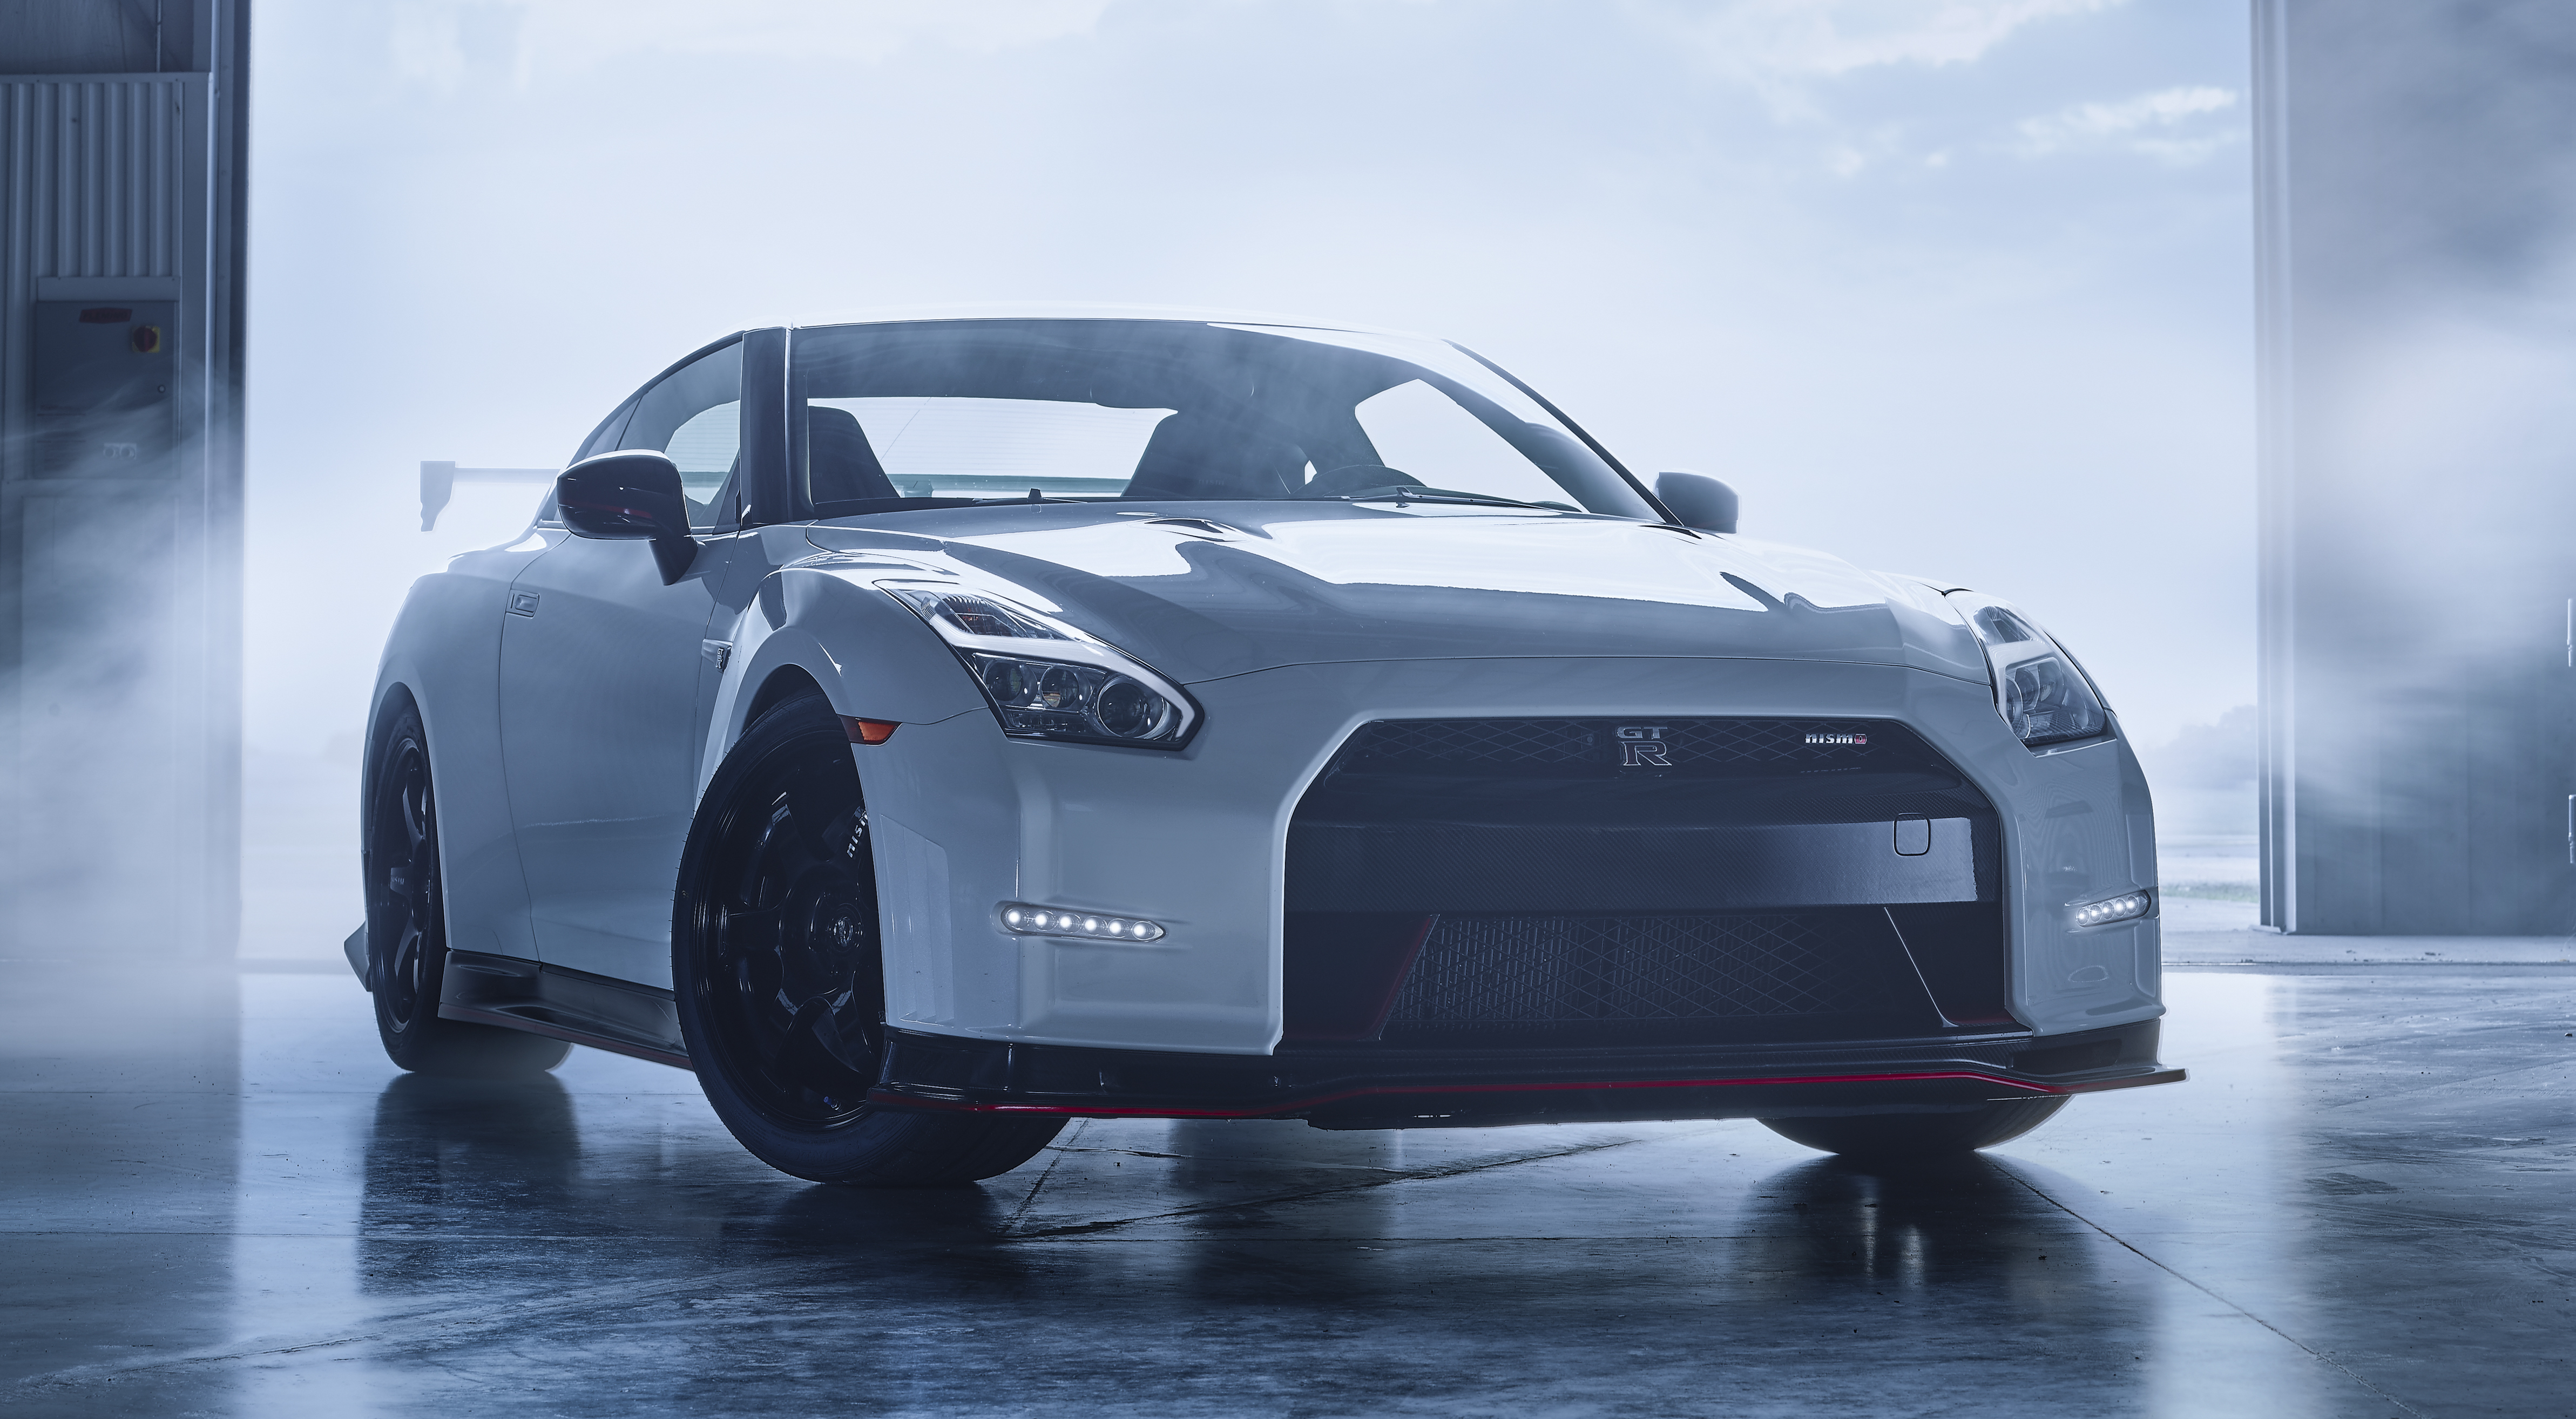 2016 Nissan Gt R Gets More Power And New Wheels Image 319070